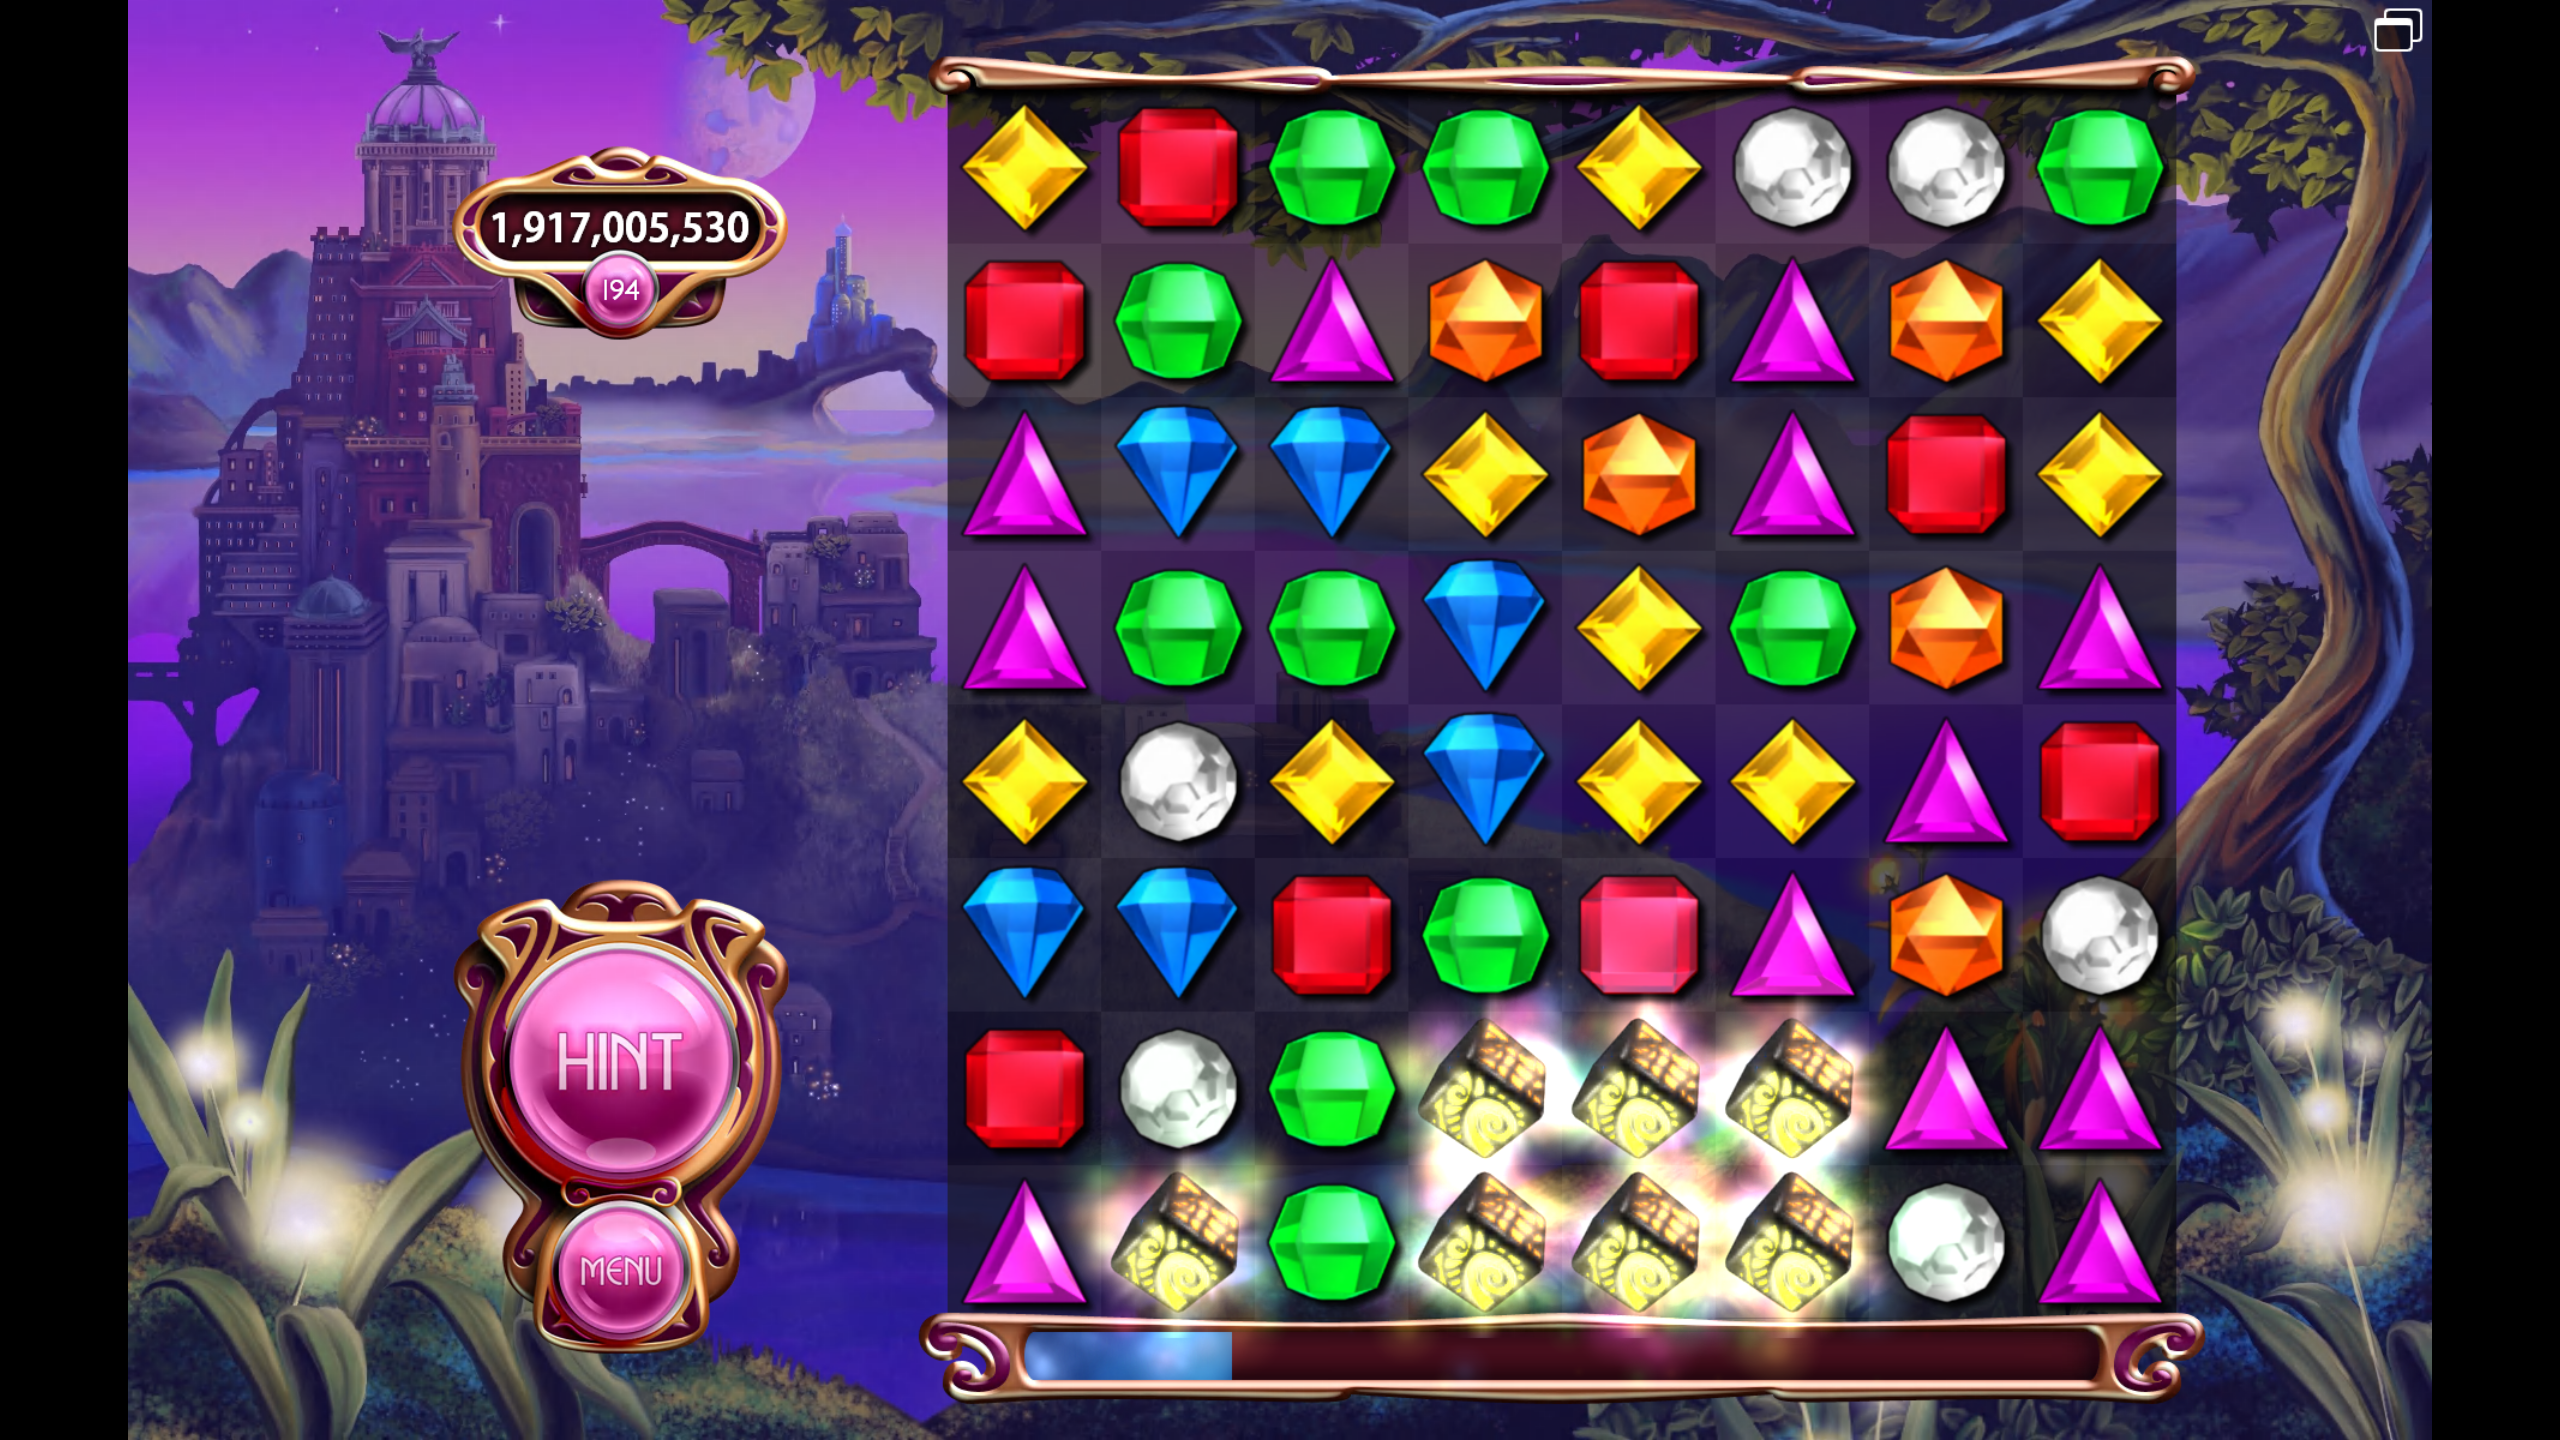 BrassRat: Bejeweled 3 [Classic] (PC) 1,909,184,590 points on 2015-06-21 14:21:58